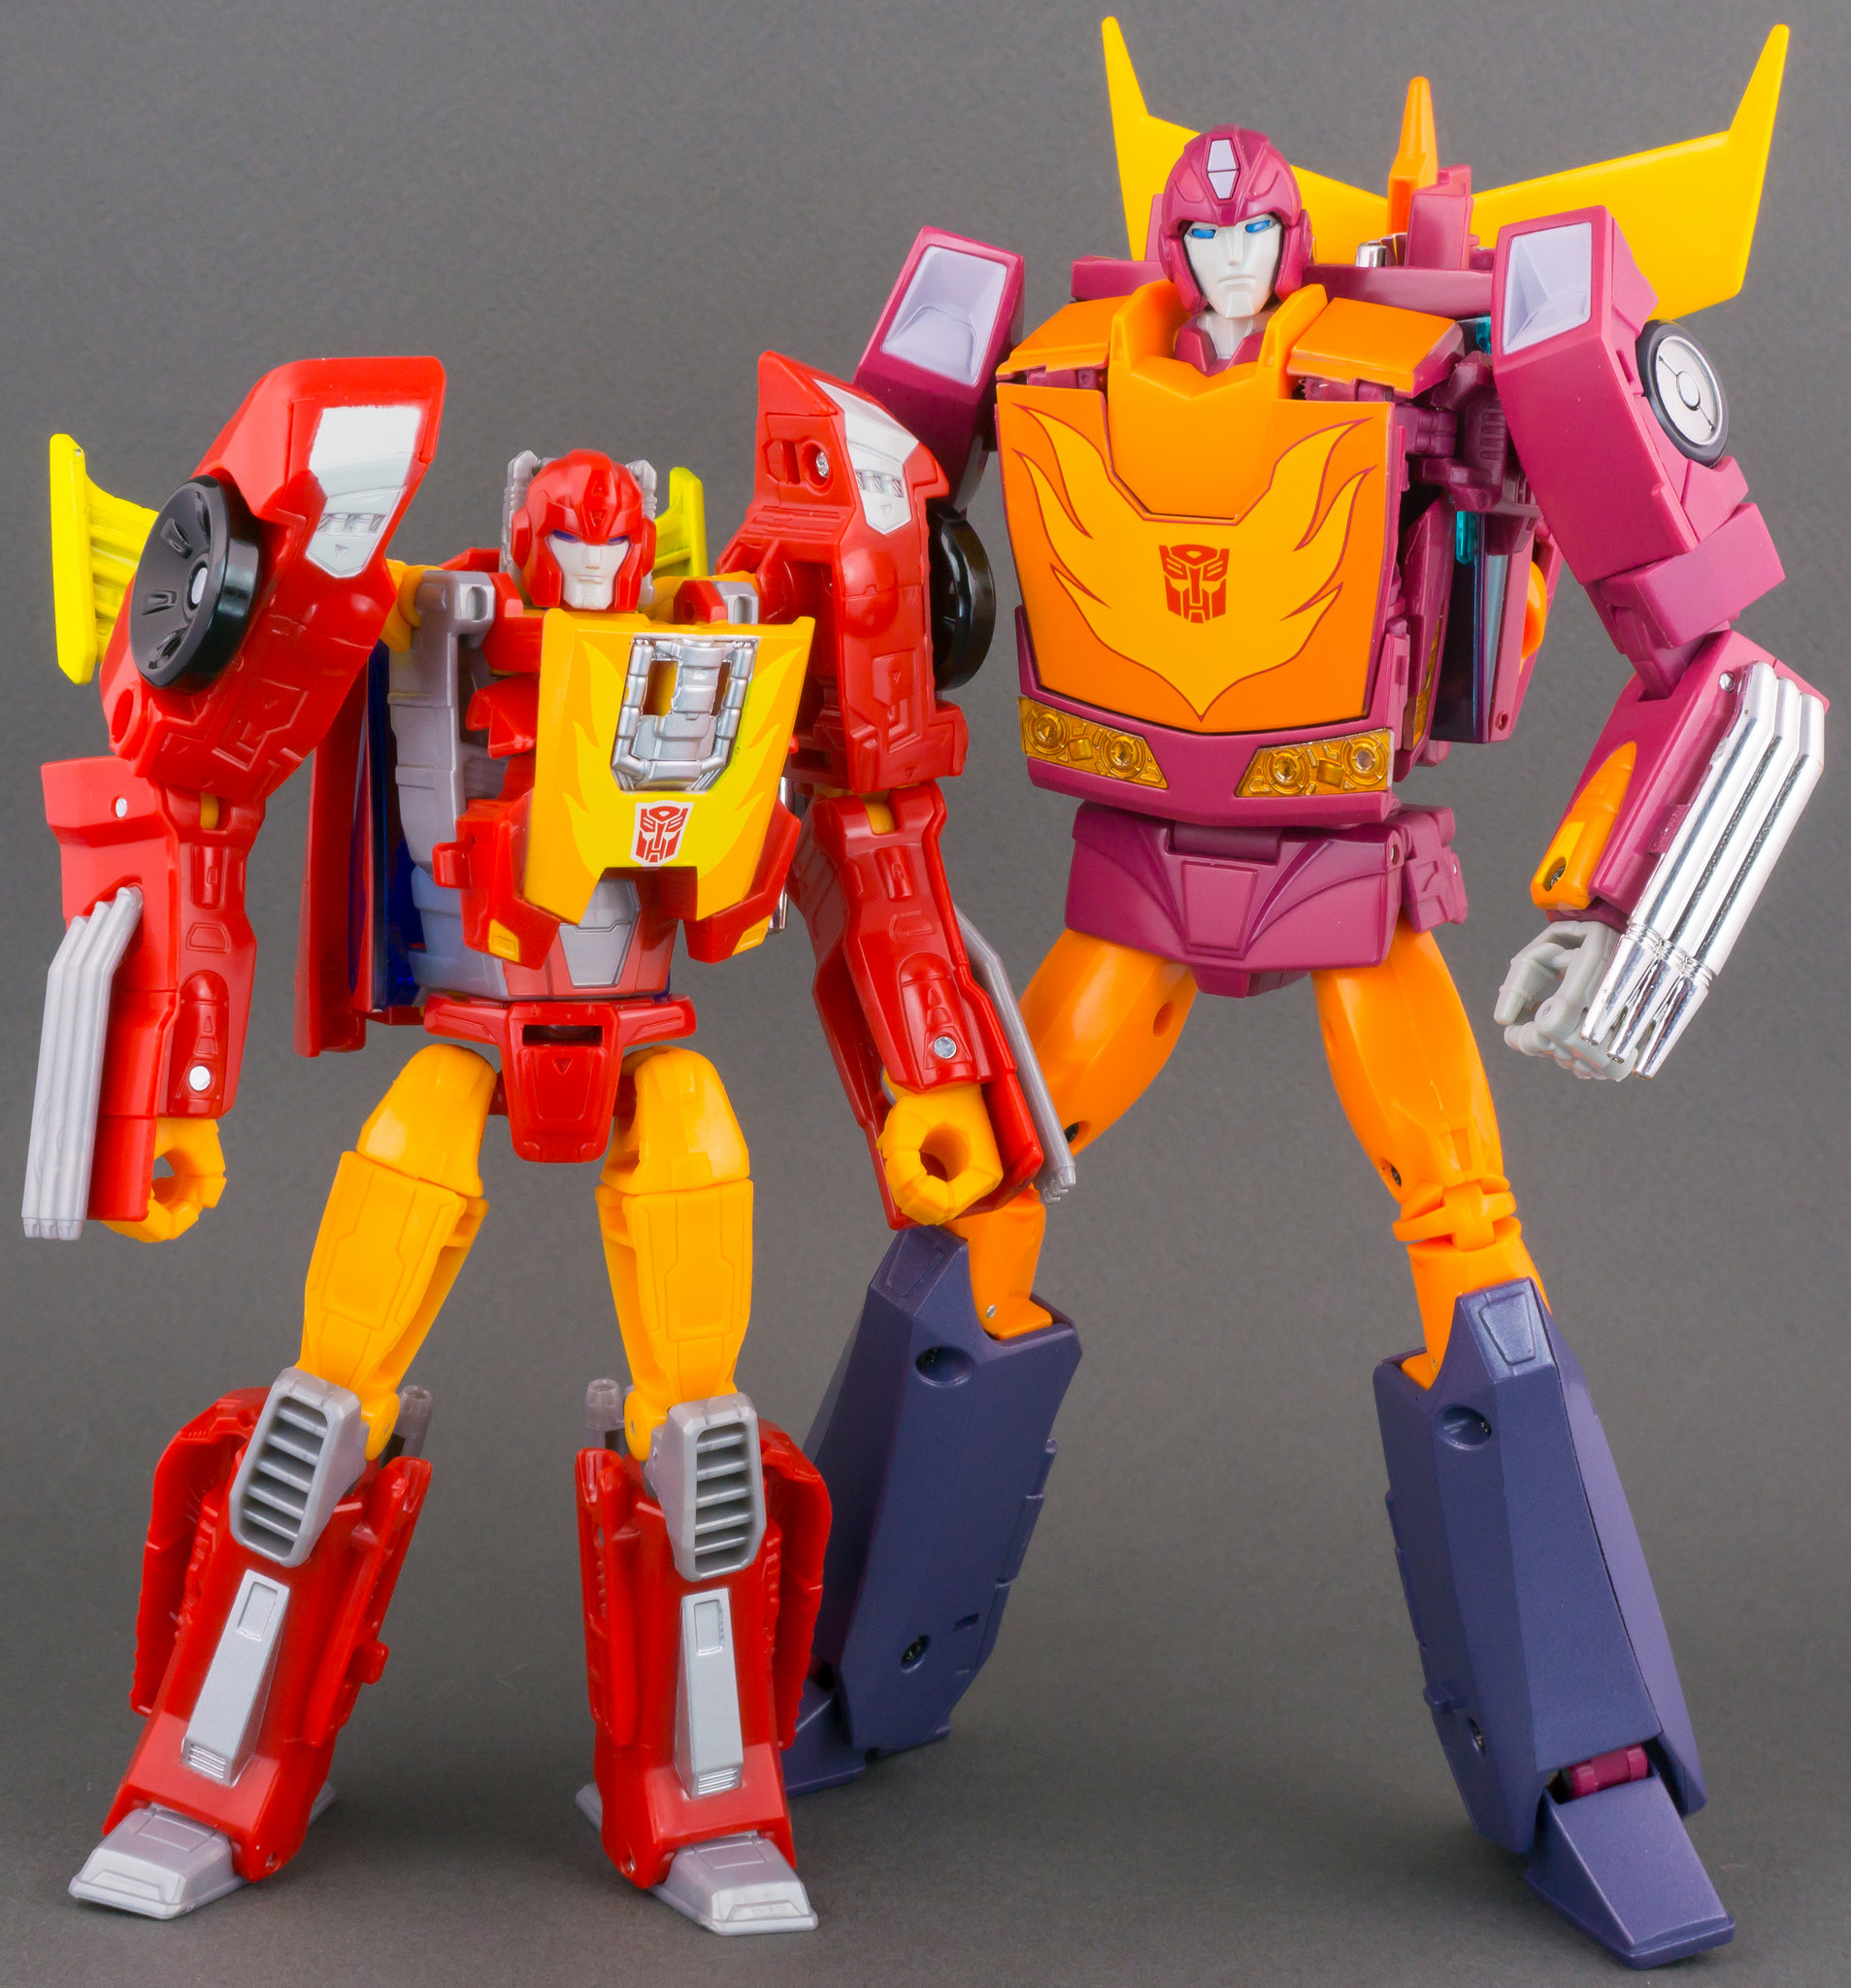 TFW2005's Titans Return Hot Rod Gallery - Transformers ...